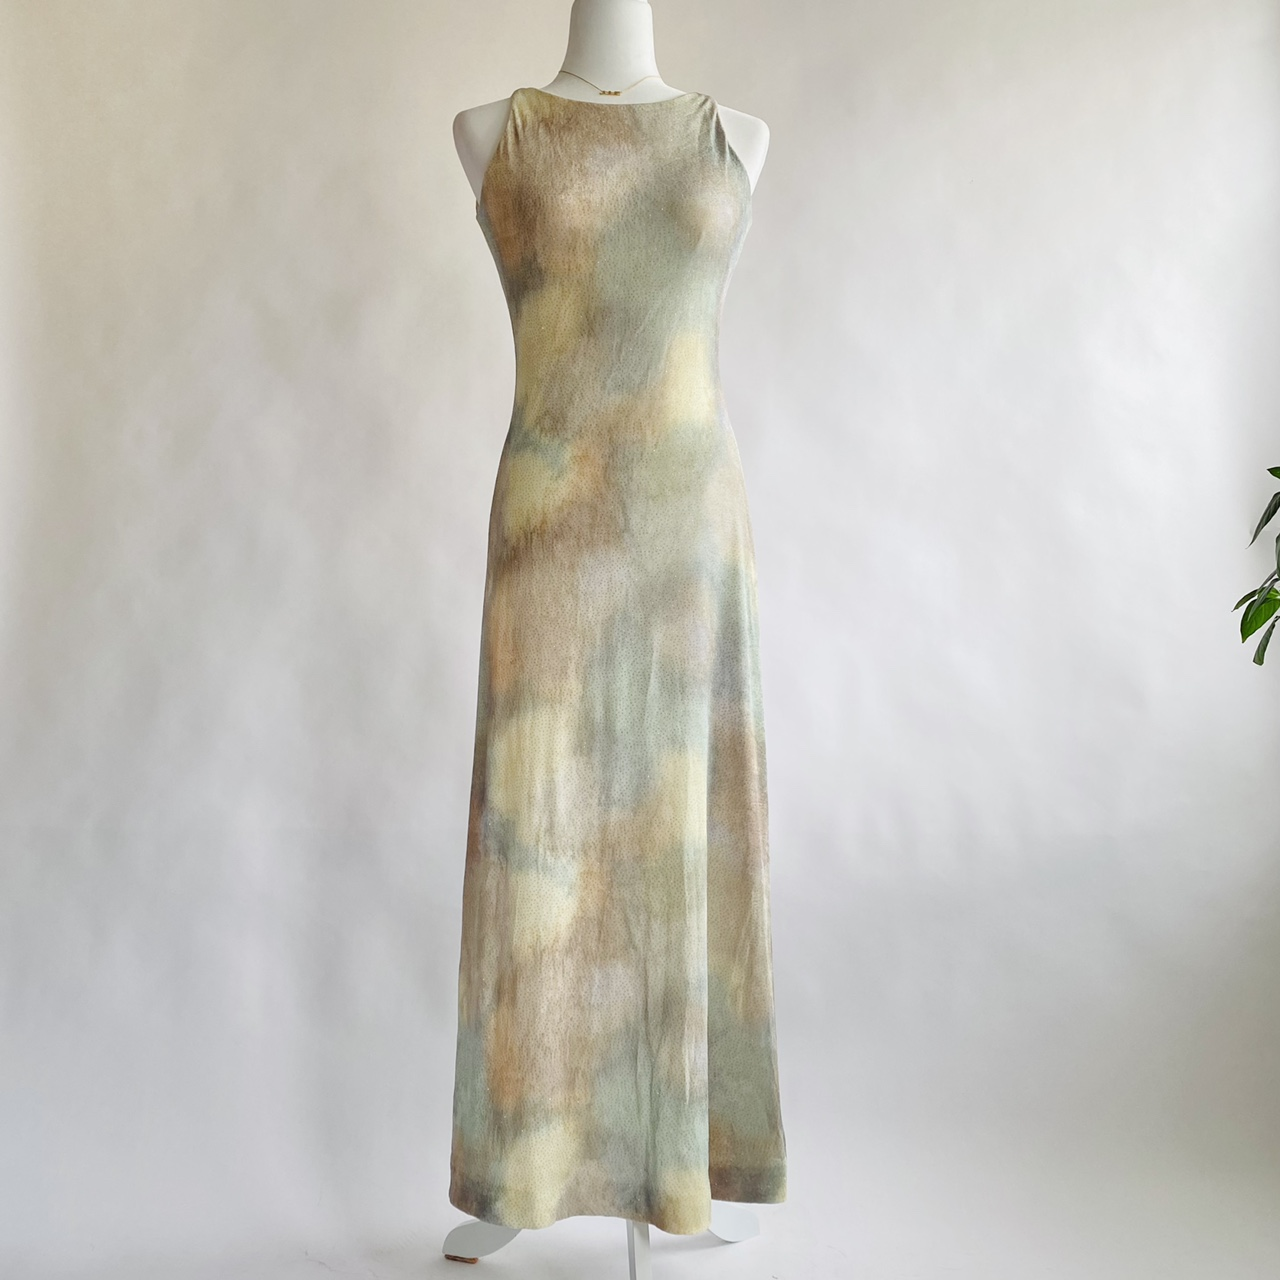 Product Image 1 - Tie Dye Vintage Pastel Gown  Ethereal